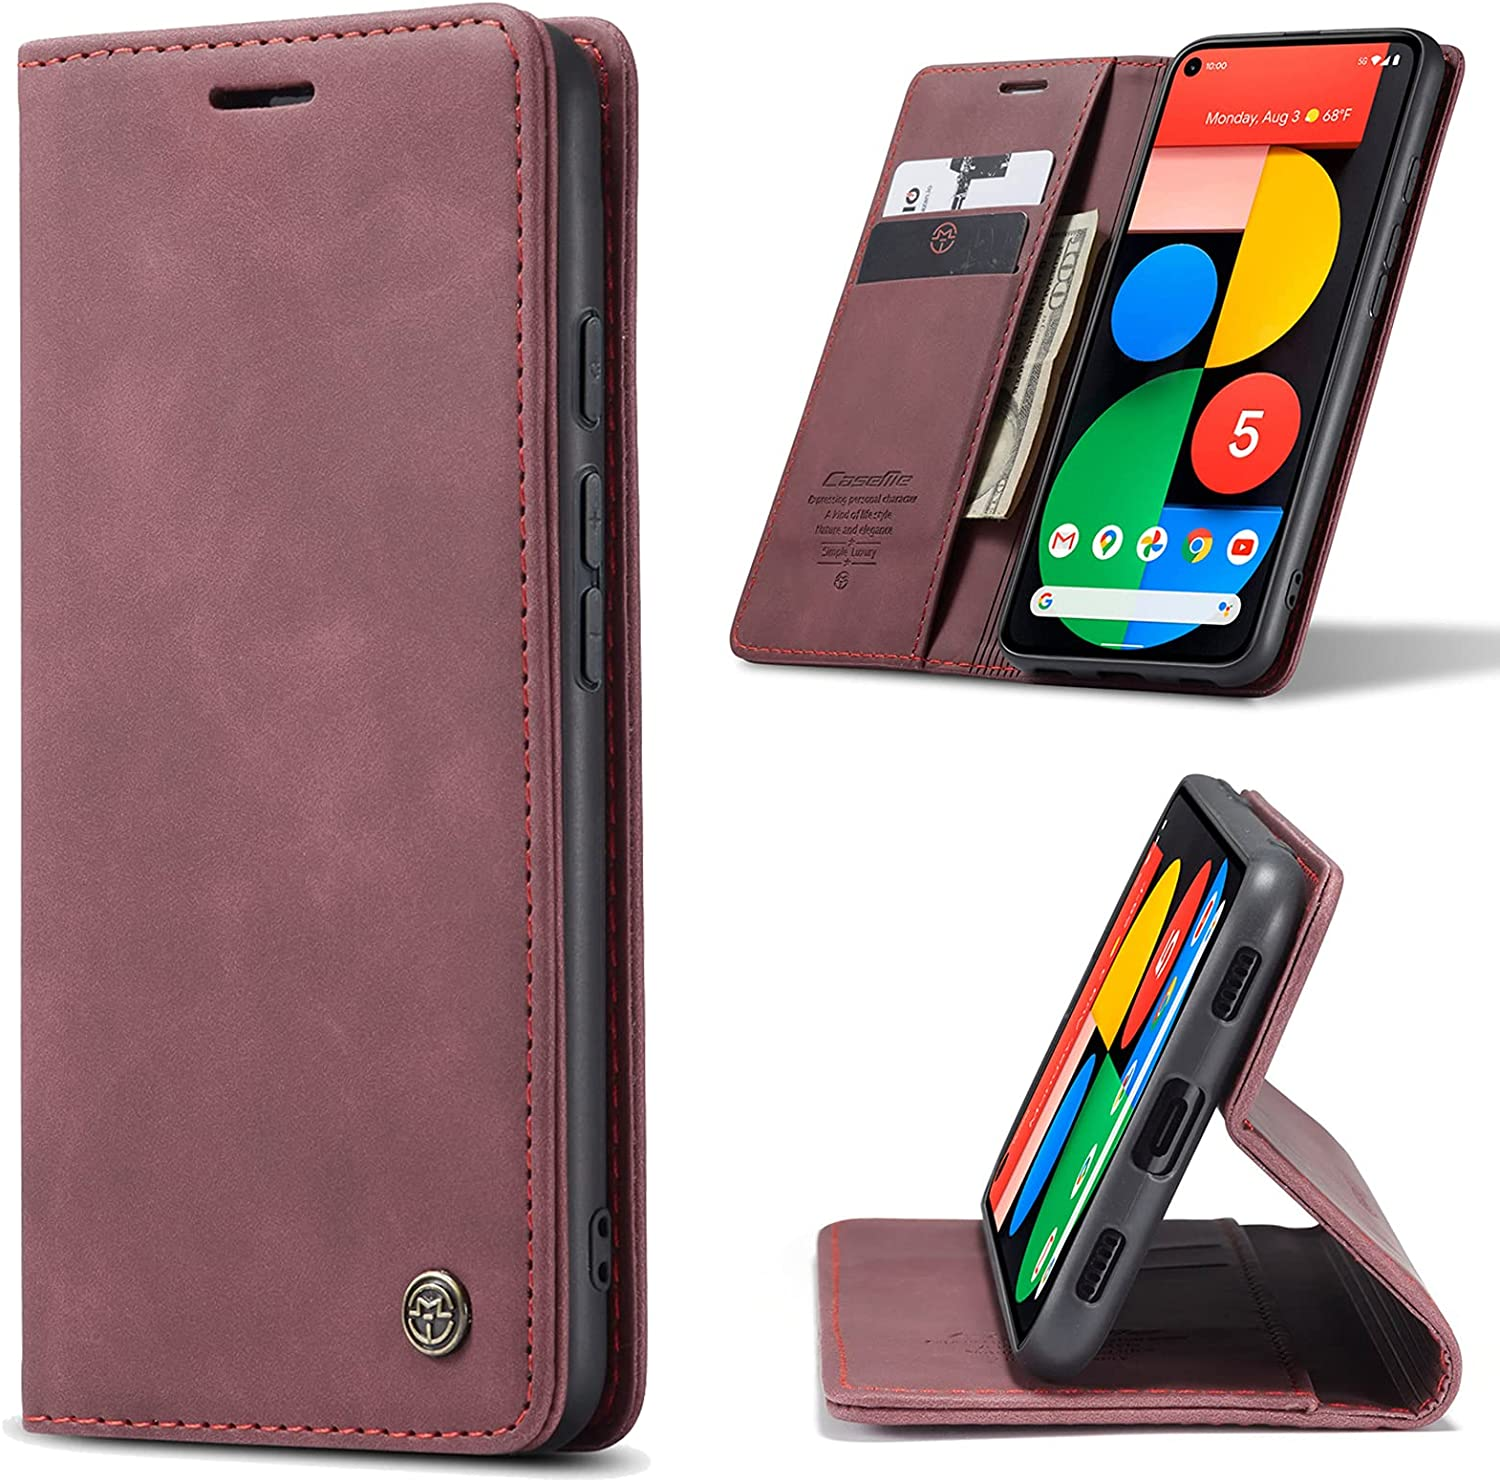 Kowauri Case for Google Pixel 5A 5G,Magnetic Closure Leather Wallet Flip Case with Card Slot Kickstand Shockproof Protective Cover for Google Pixel 5A 5G (Wine red)